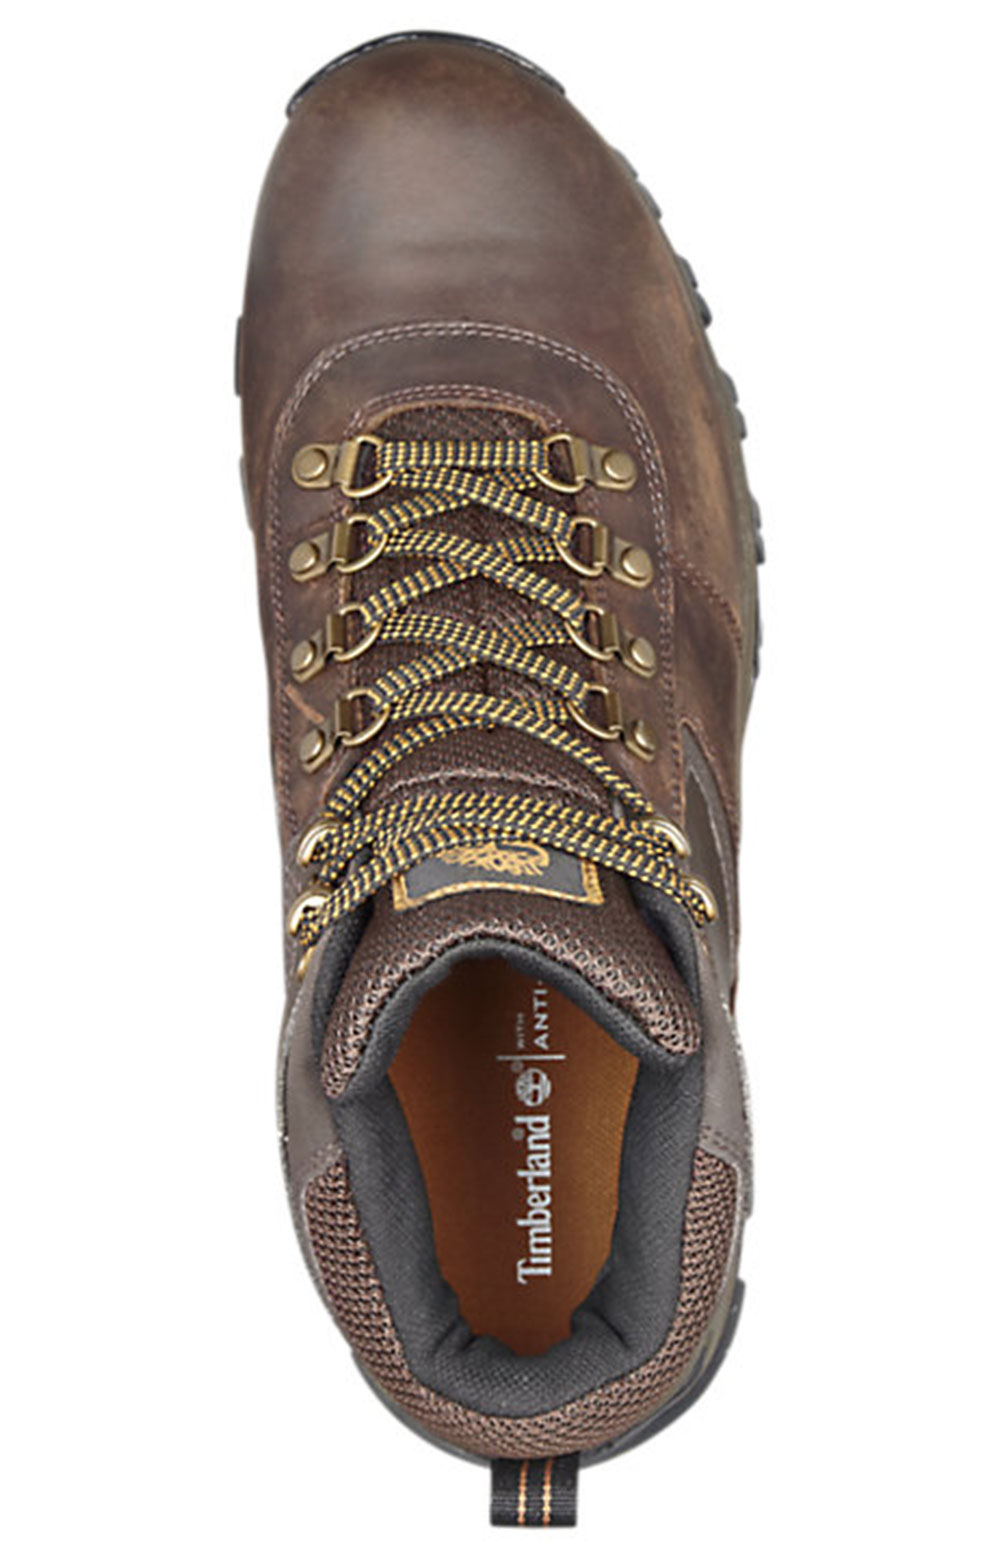 (TB02730R242) Mt. Maddsen Mid Waterproof Hiking Boots - Dark Brown  4